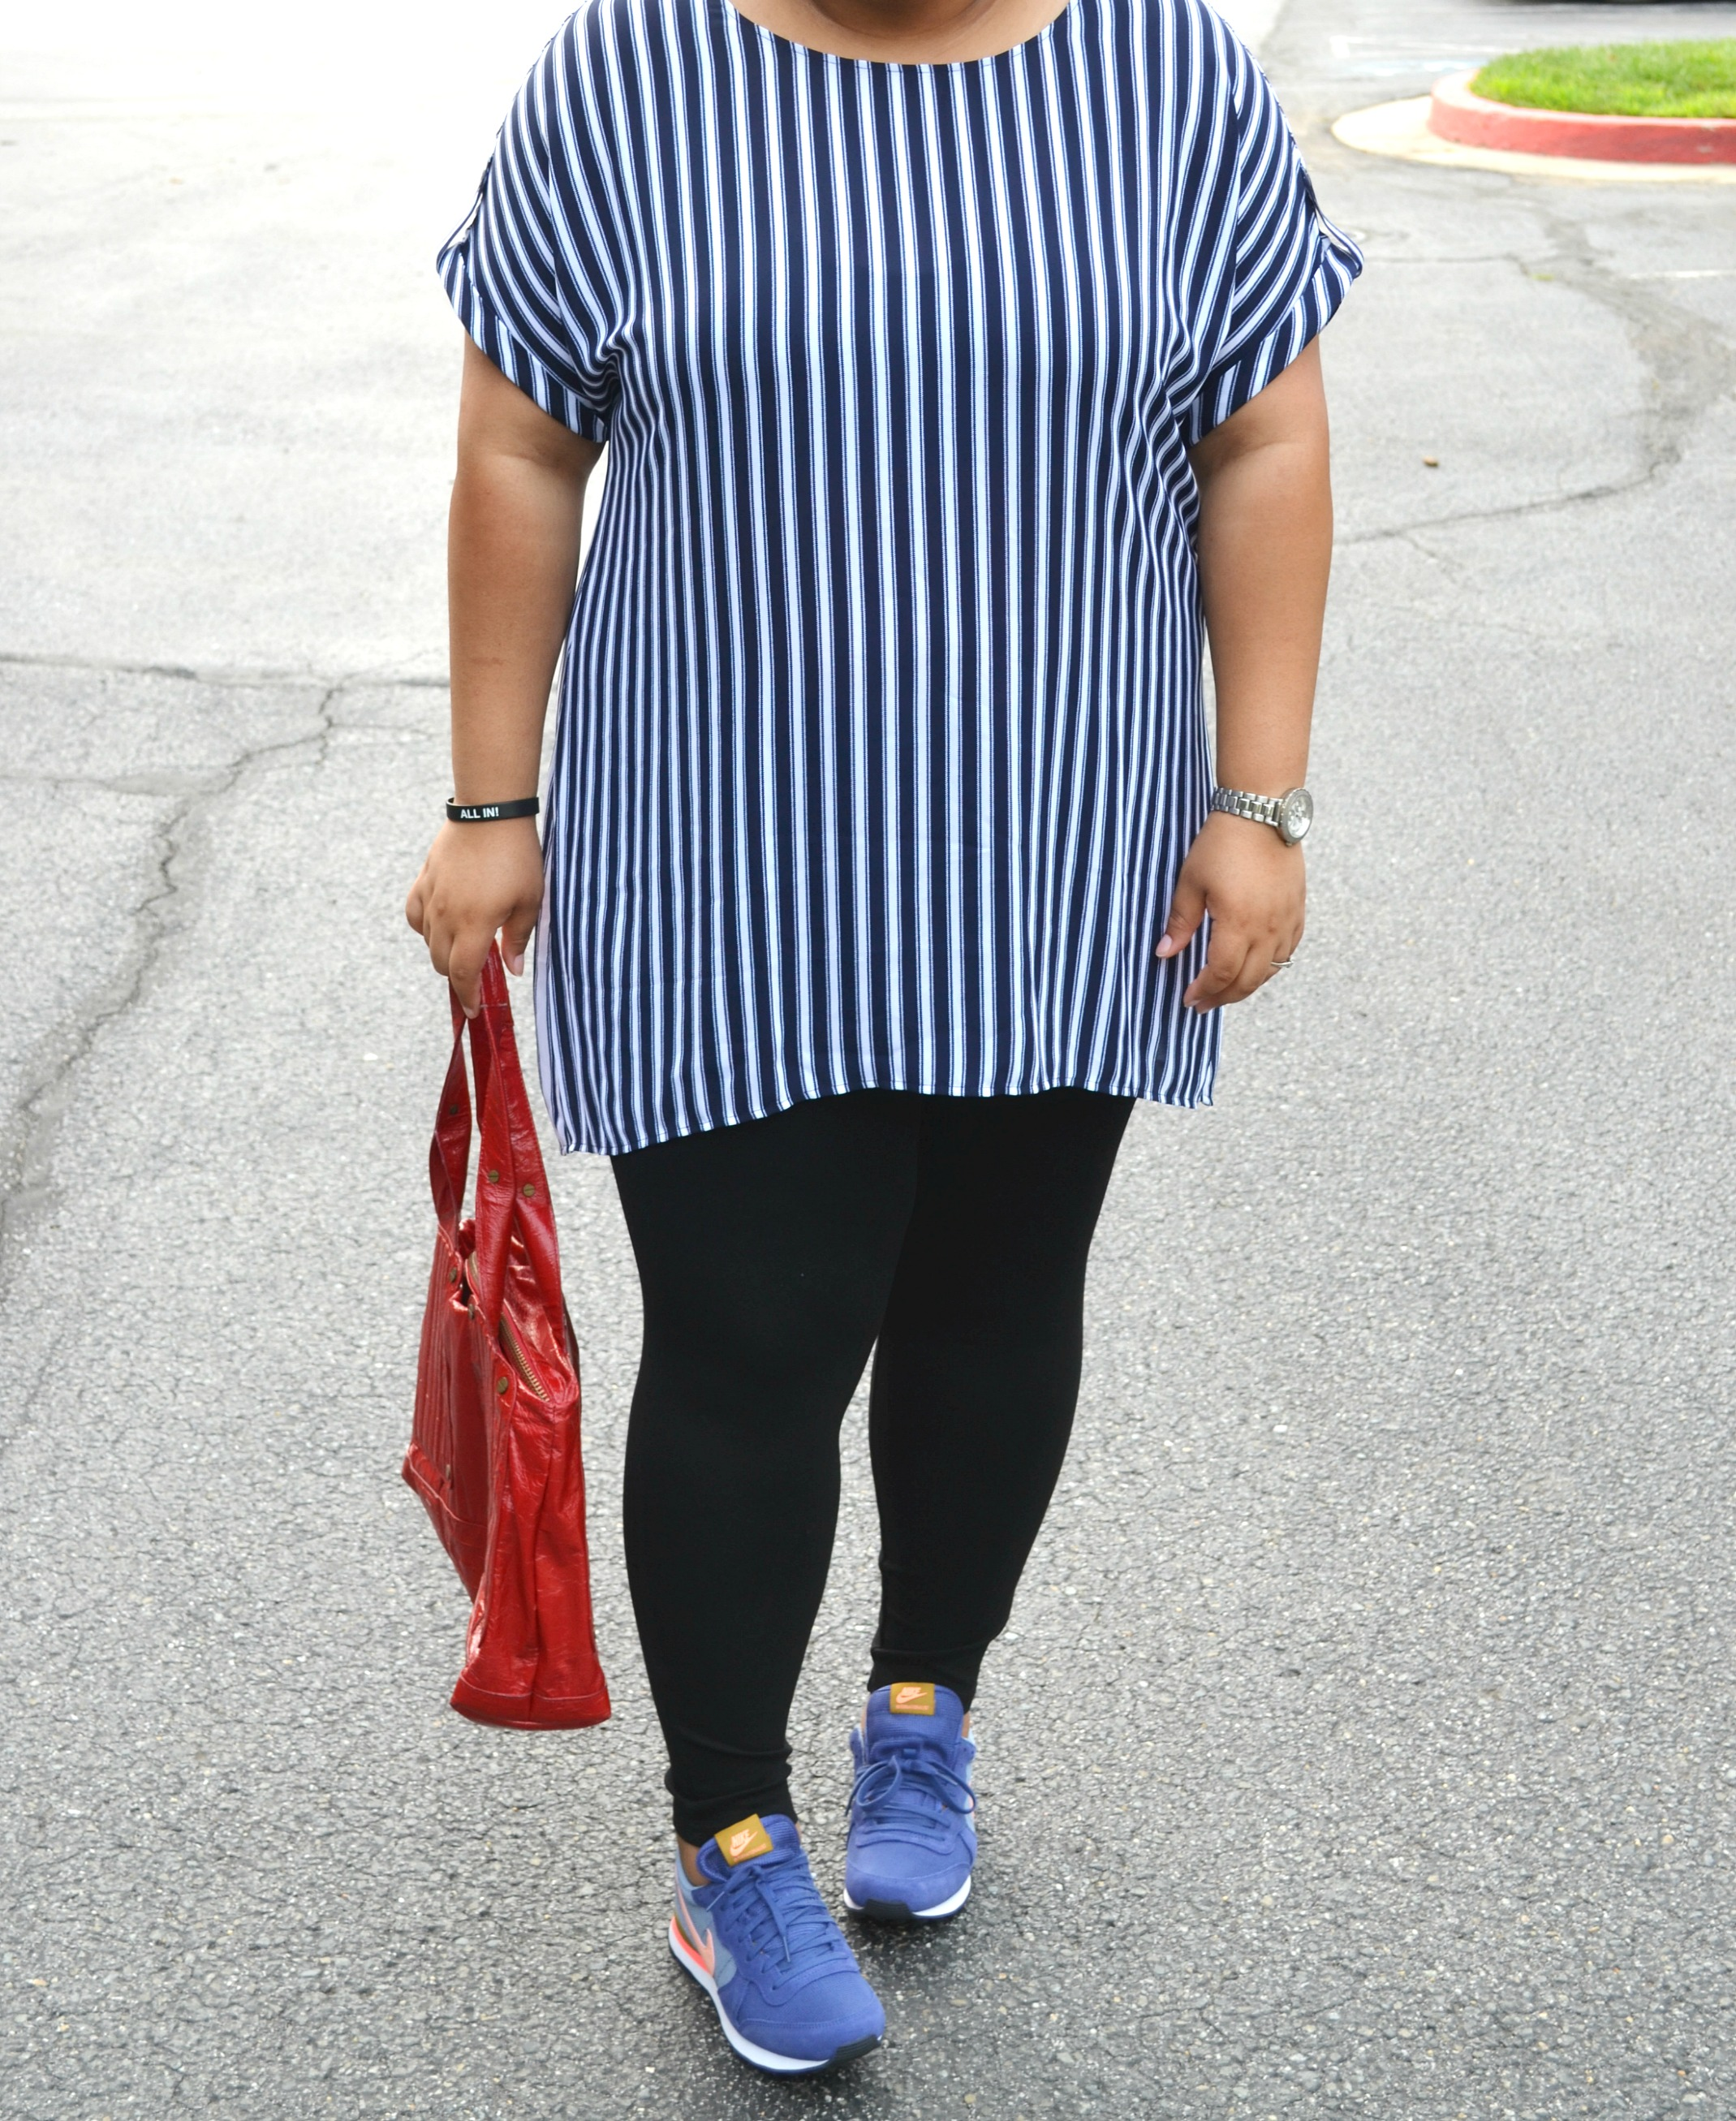 Wearing Stripes - Casual OOTD